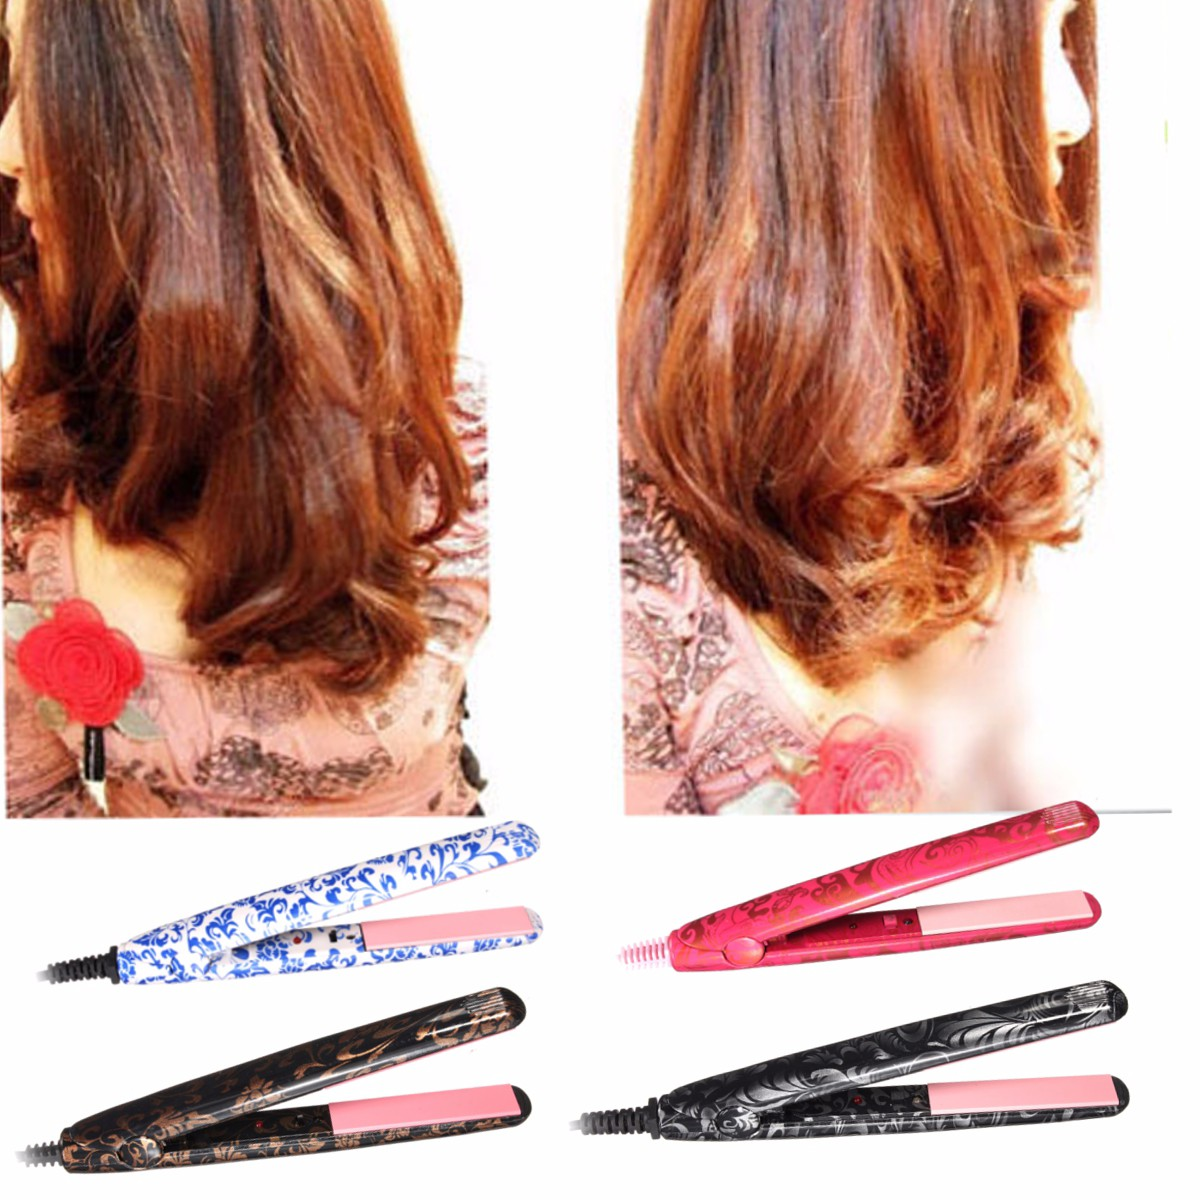 Portable Ceramic Hair Dryer Curlers Blow Straightener Waver Flat Iron Styler Products Professional Hairstyling Care Appliance